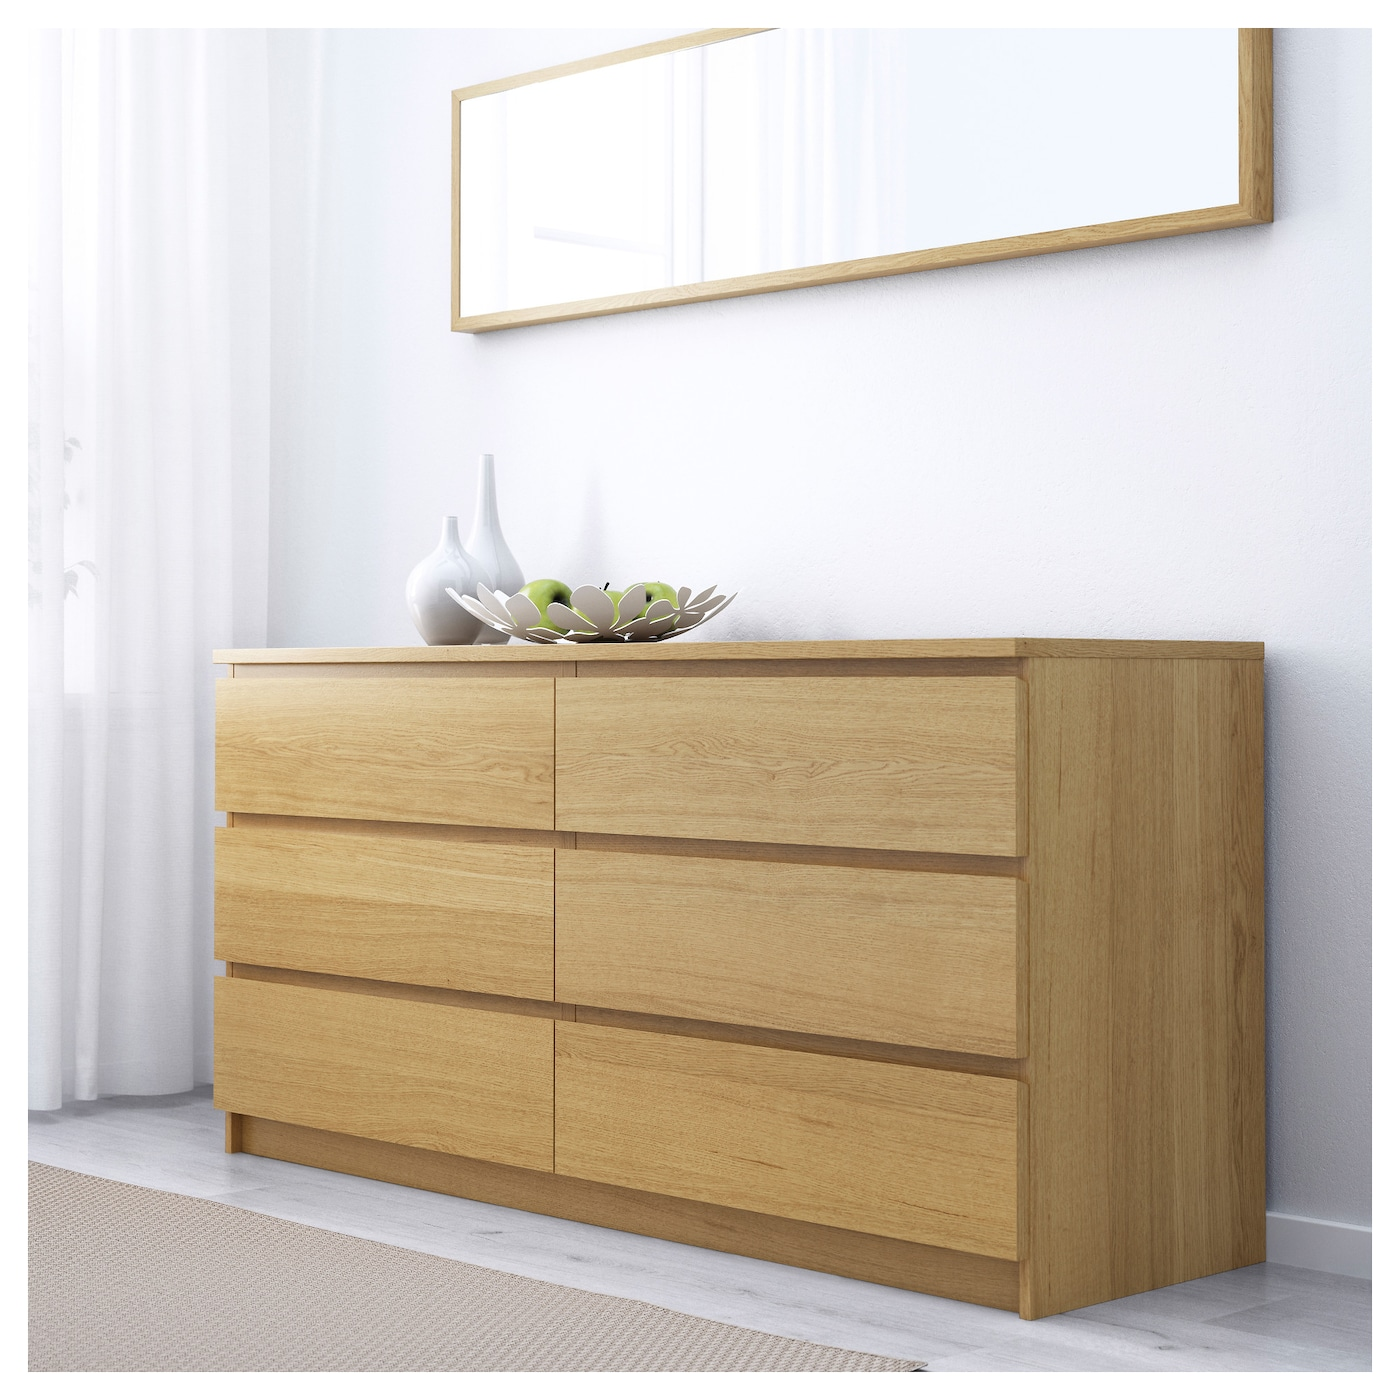 Malm chest of drawers oak veneer cm ikea